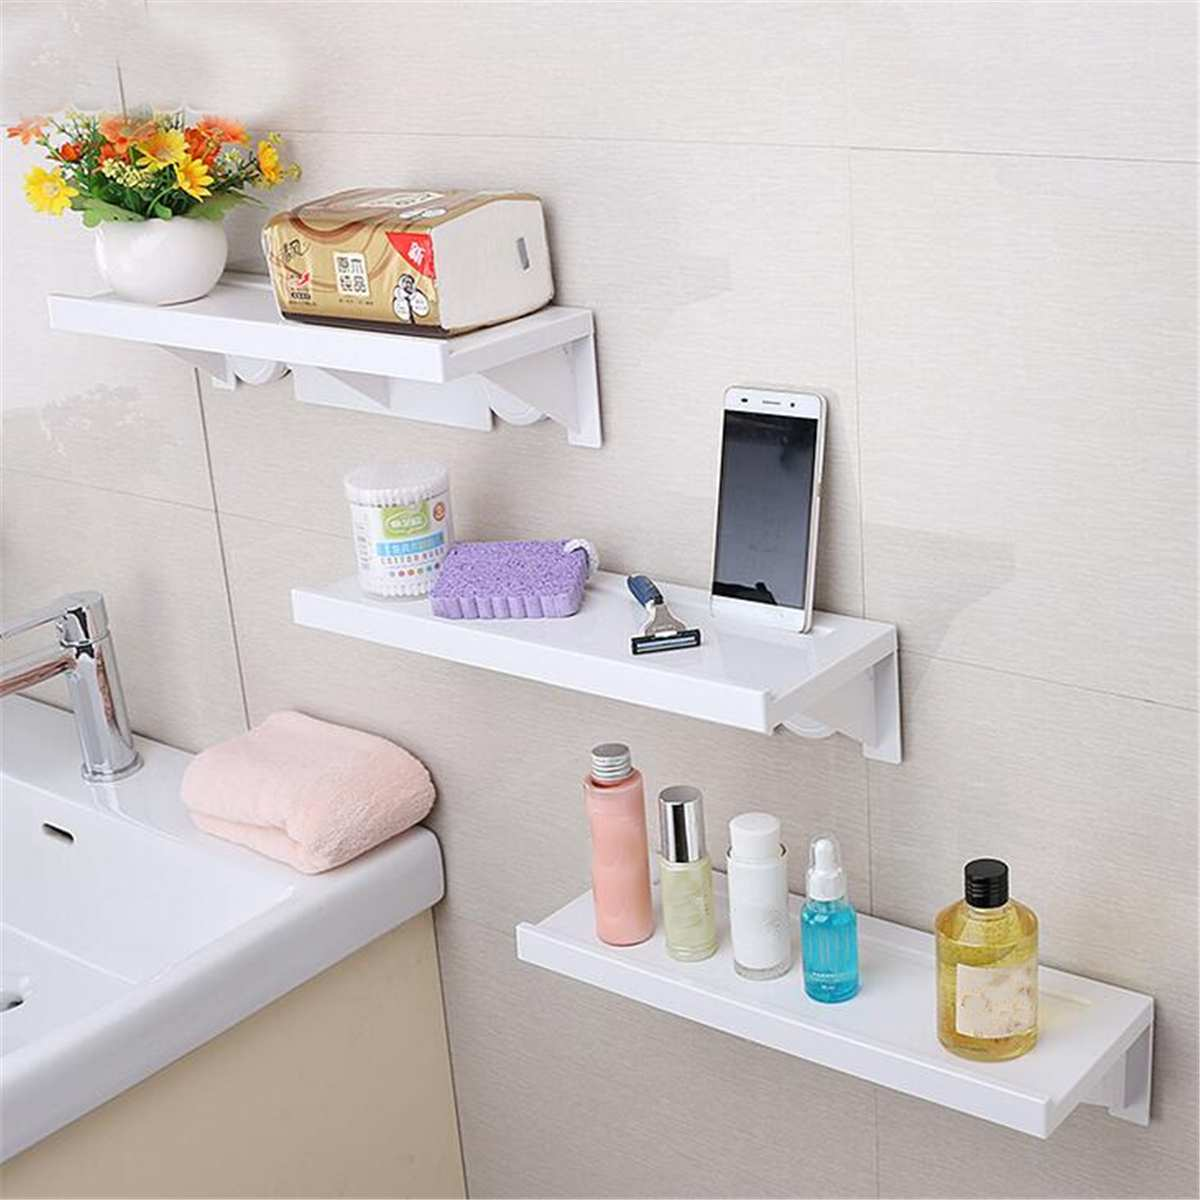 5kg Bathroom Wall Hanging Shelf Caddy Storage Holder Shower Rack Shelf Shampoo Organiser Suction Cups Free Punching White